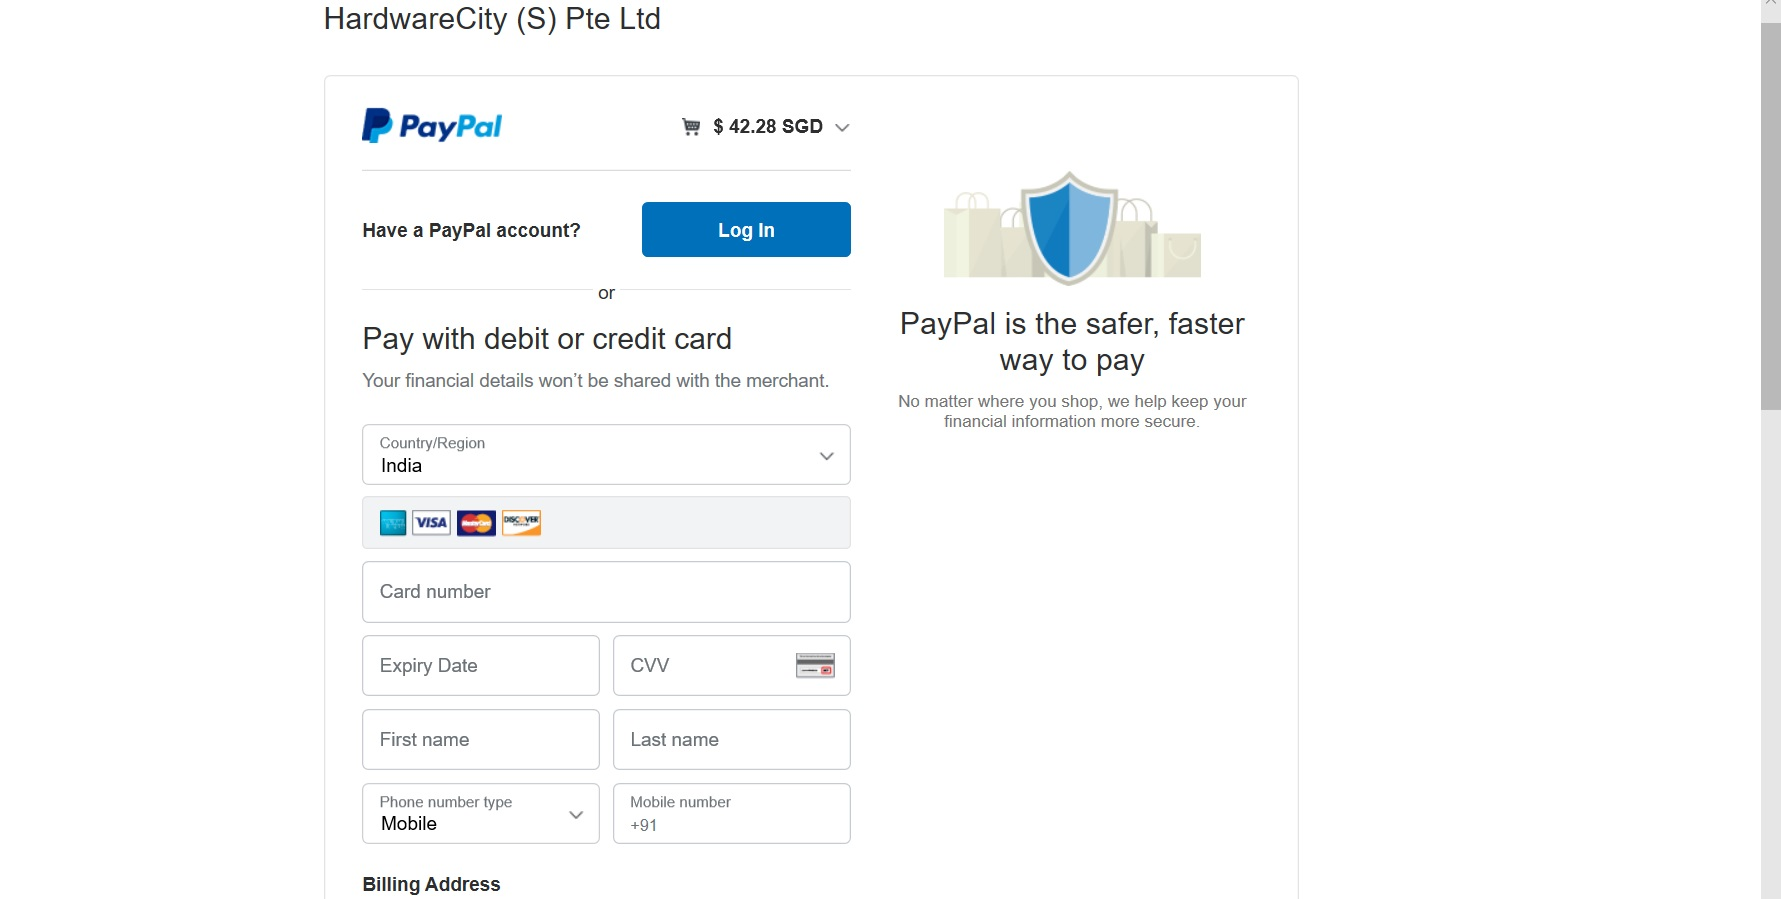 Form to enter card details for Paypal payment.